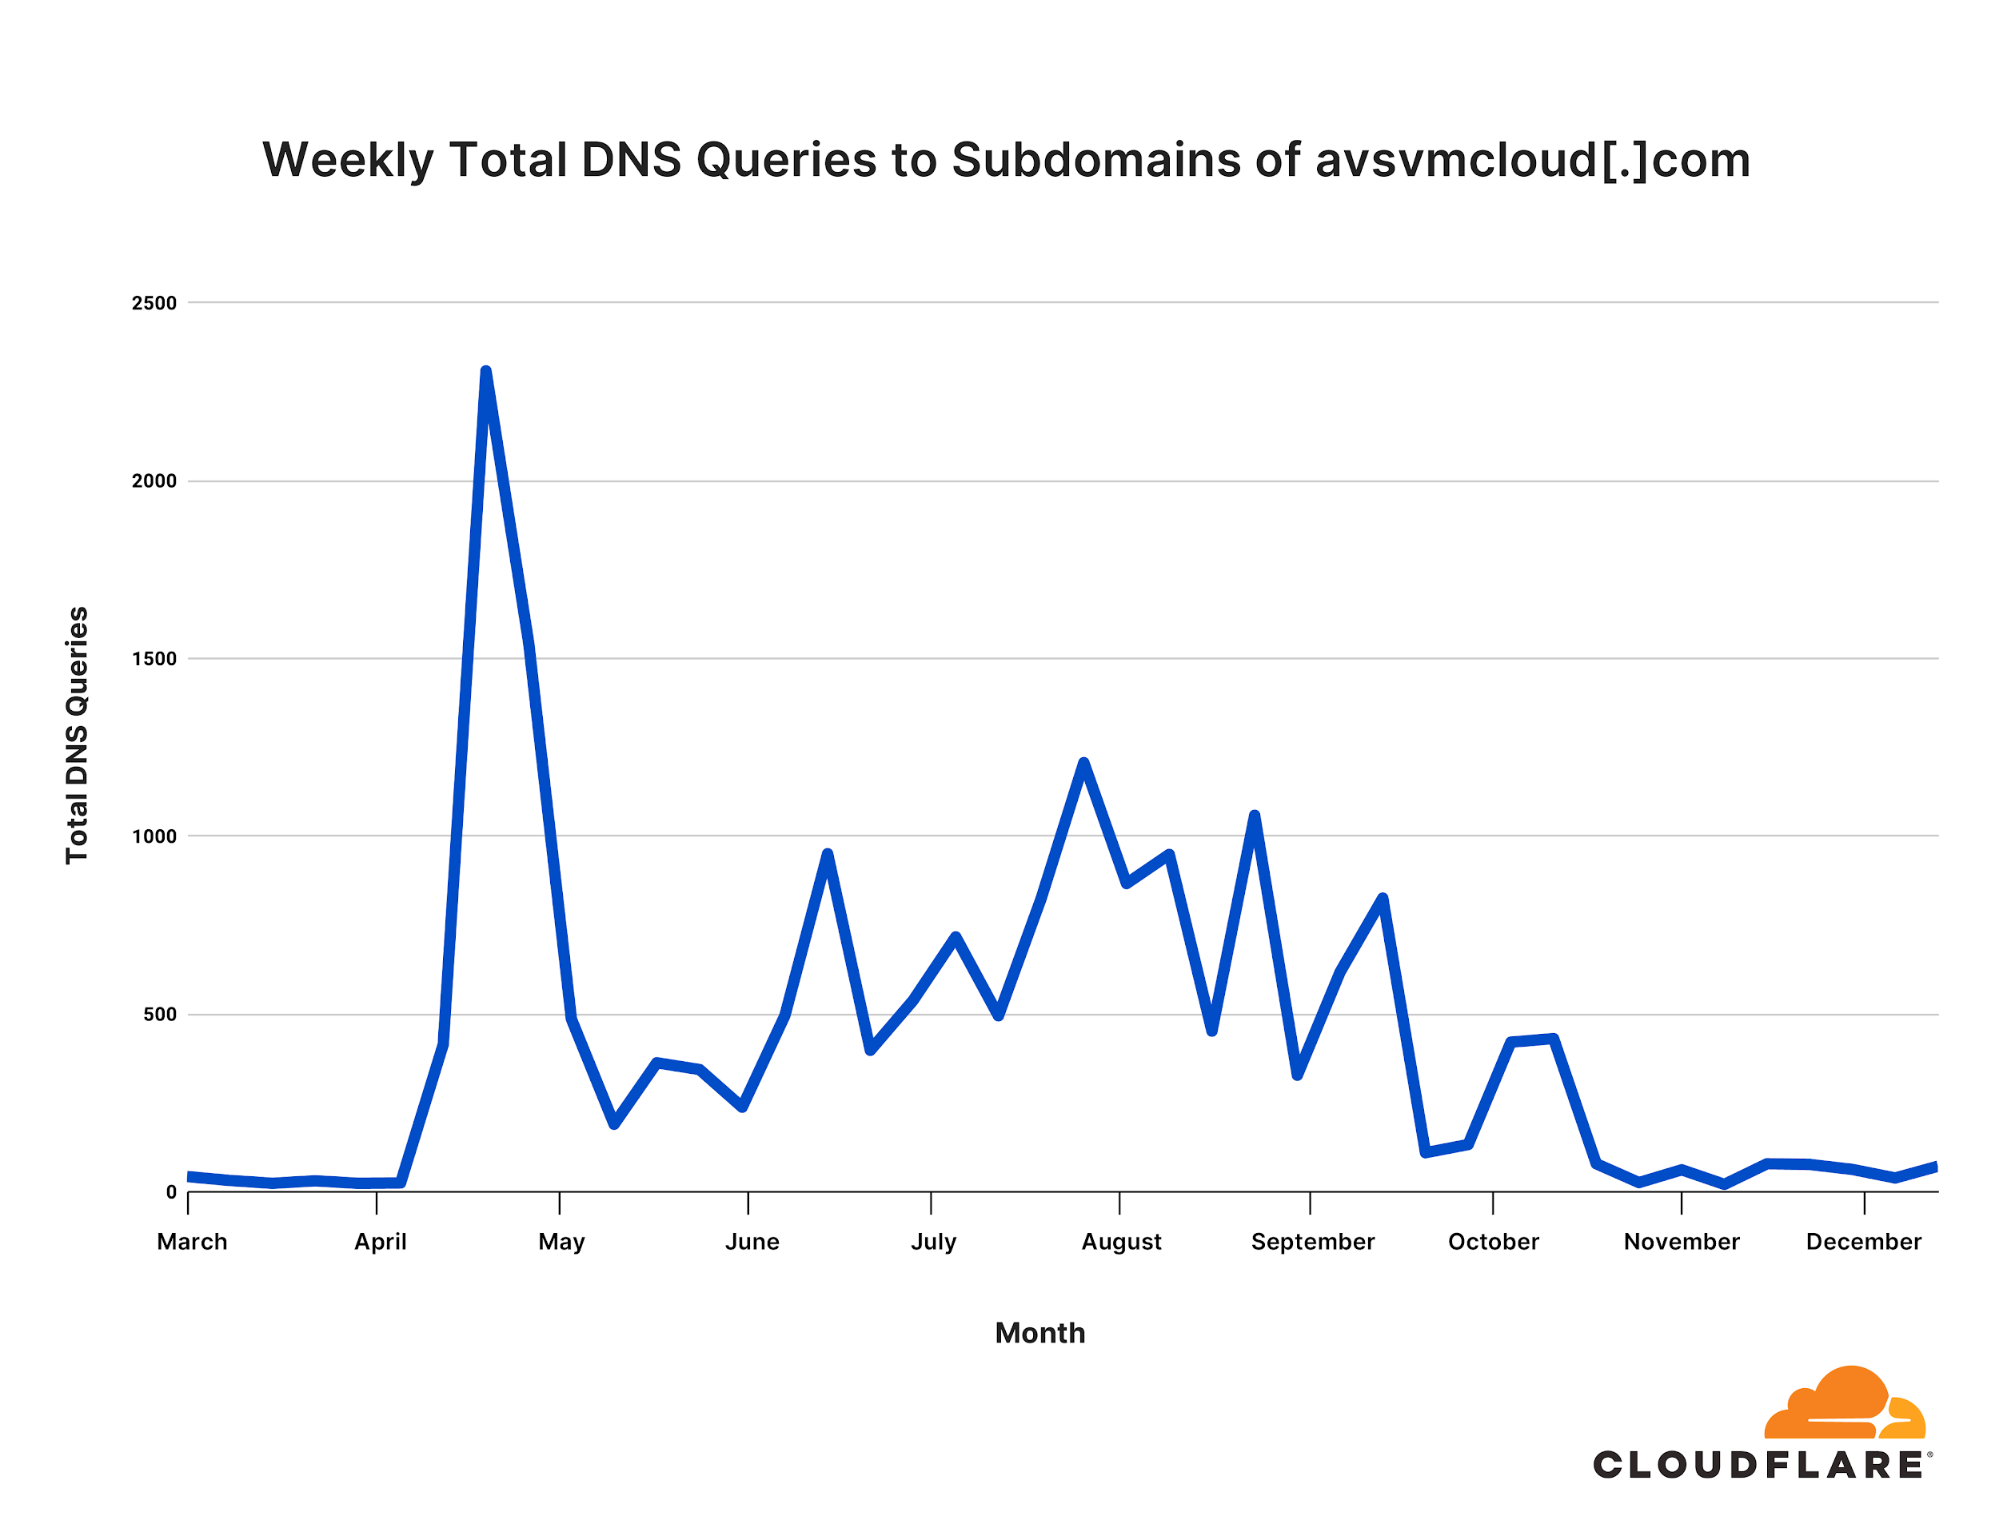 We first noticed a spike in DNS traffic through Cloudflare's 1.1.1.1 resolver to avsvmcloud[.]com starting in April 2020